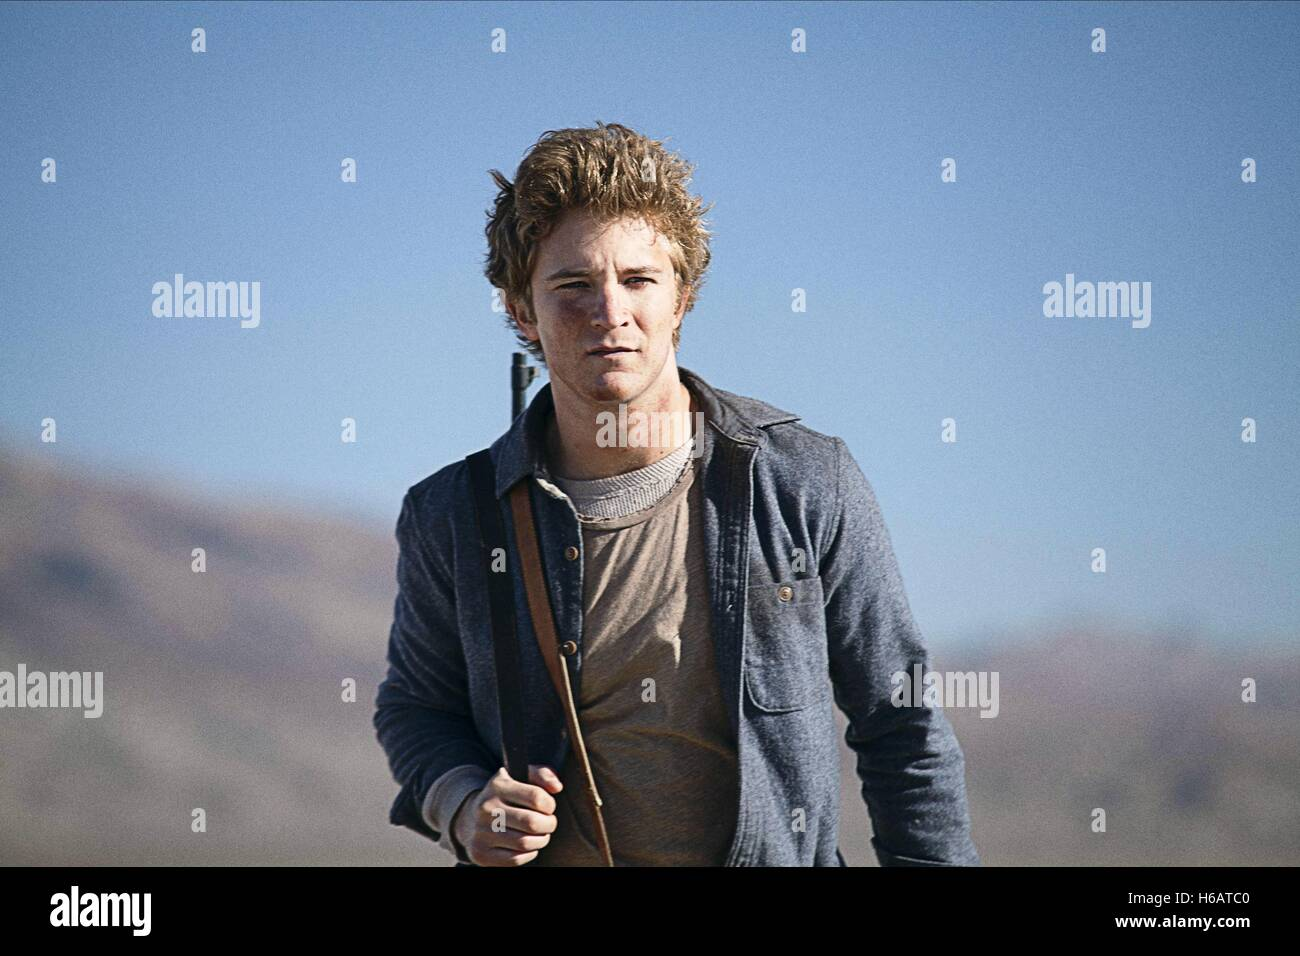 MICHAEL WELCH THE LAST SURVIVORS; THE WELL (2014) - Stock Image